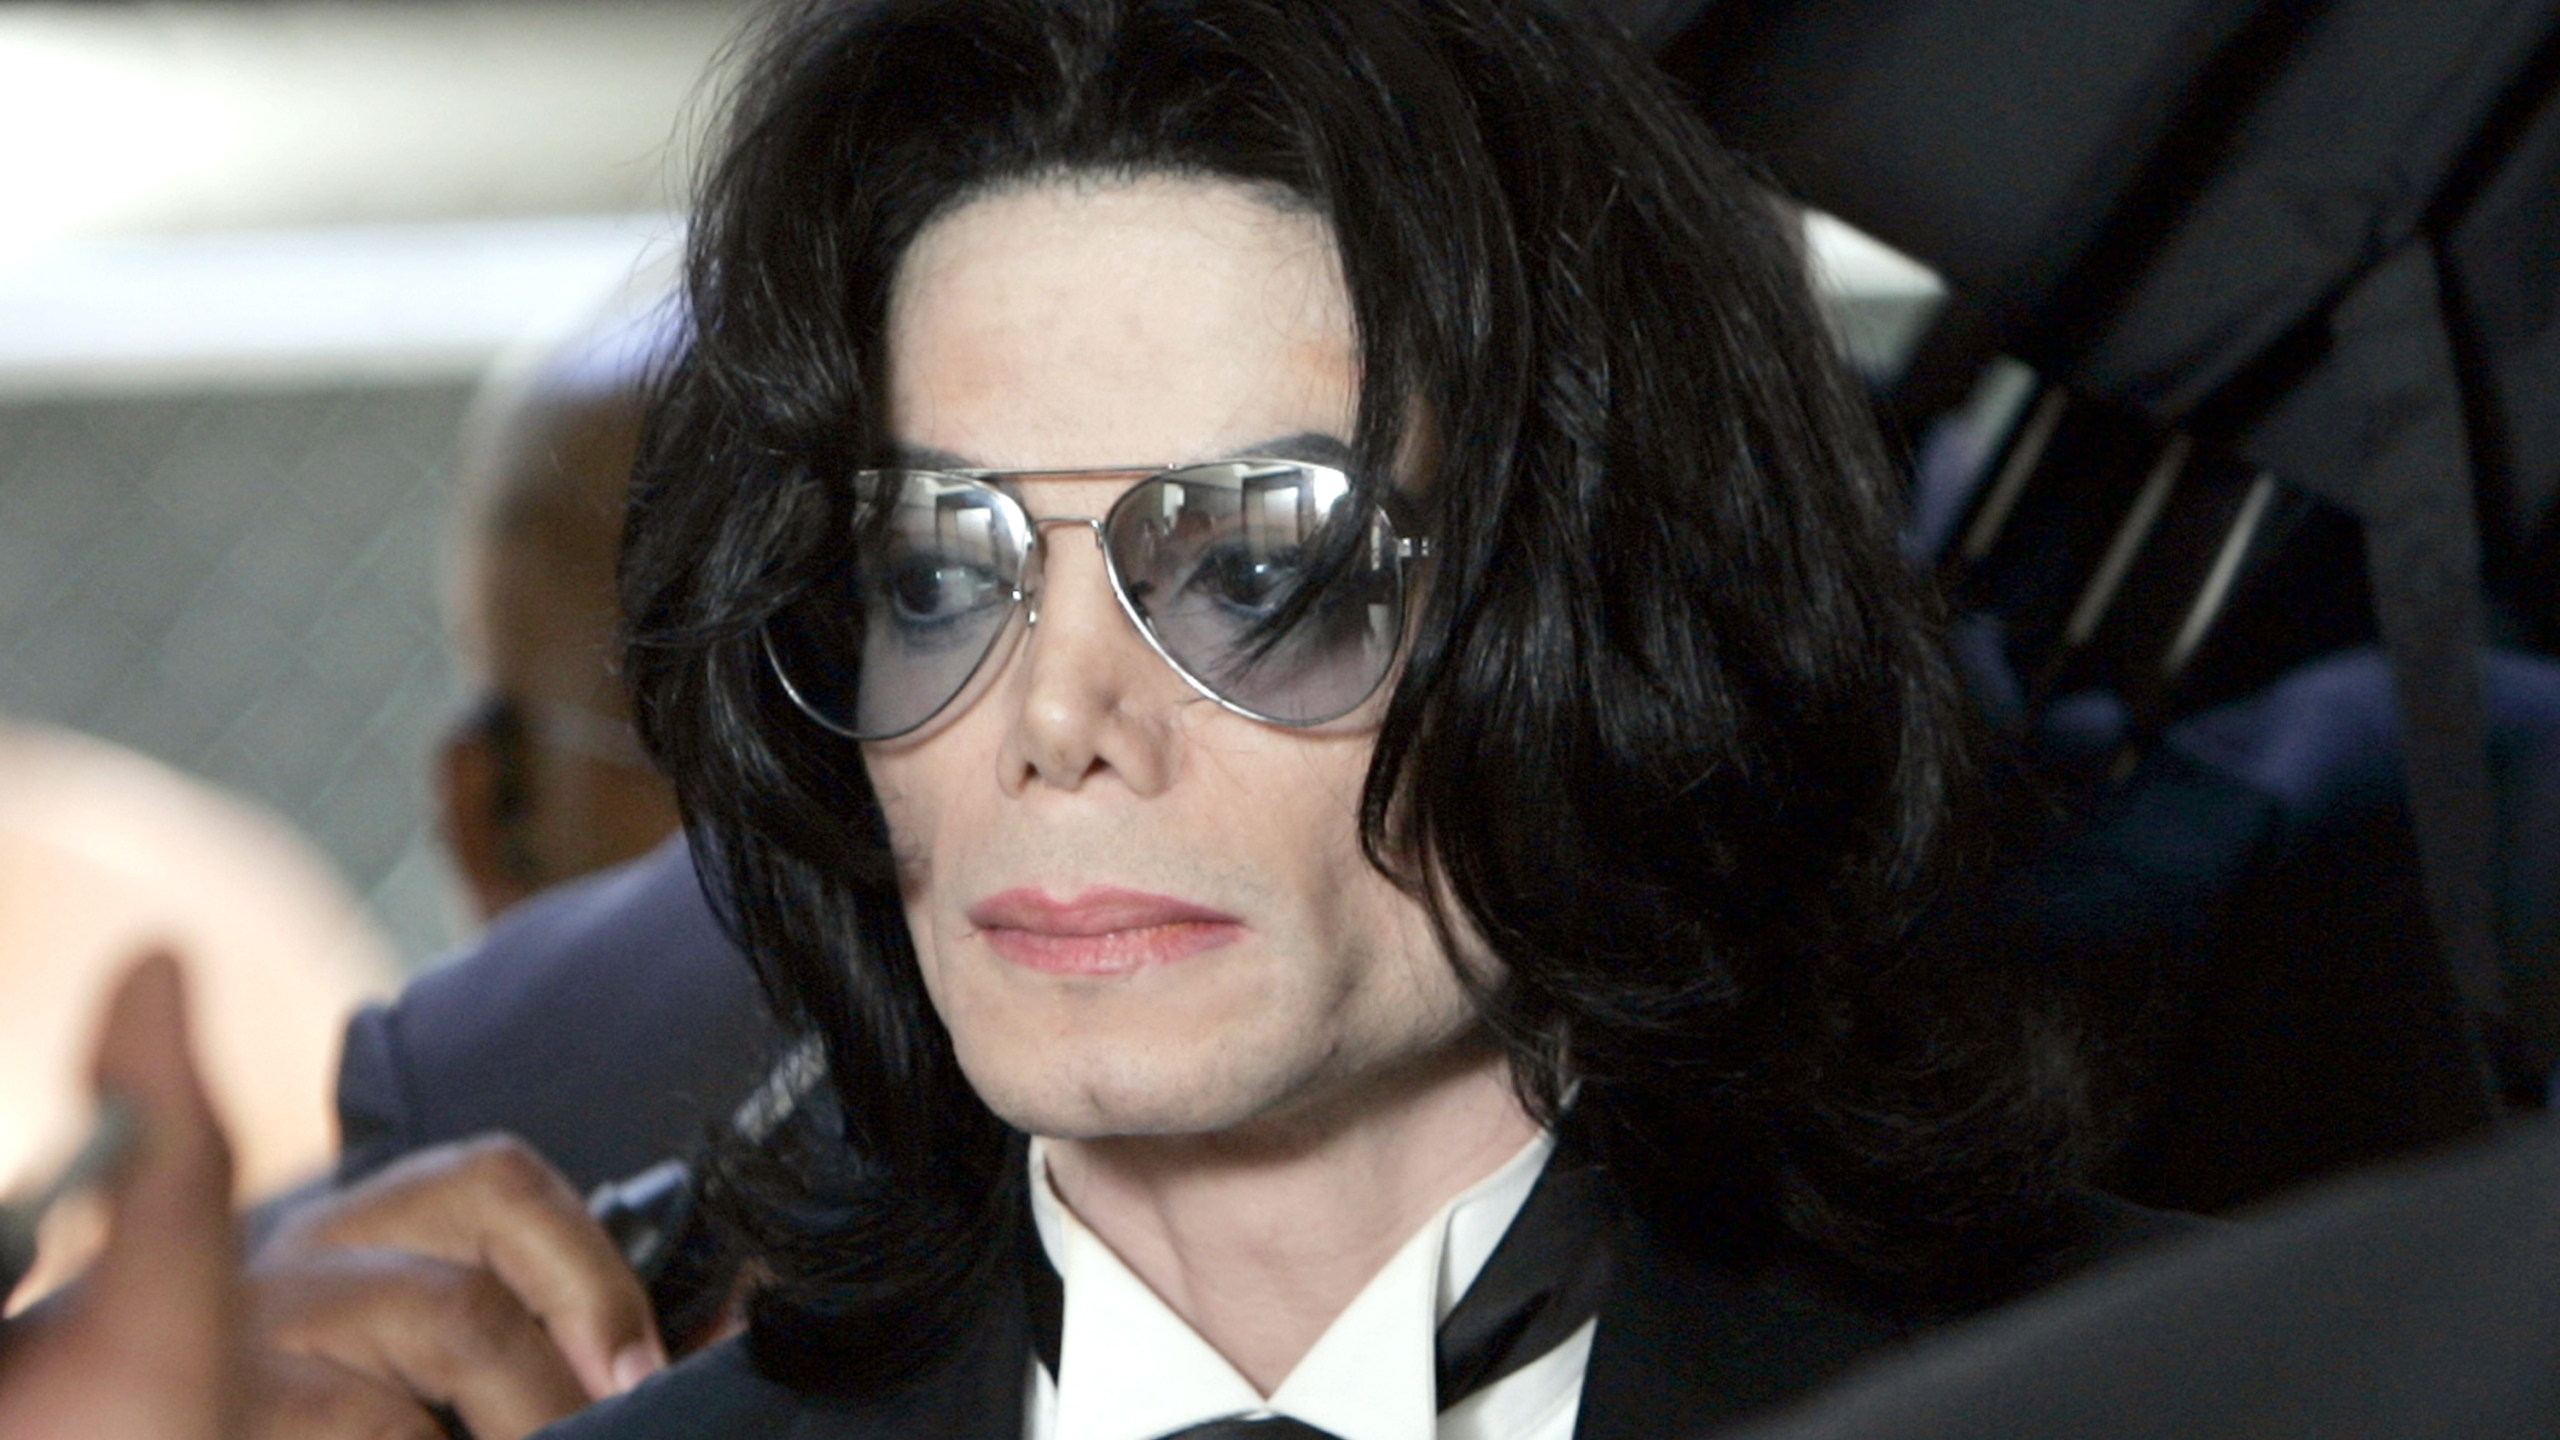 Michael Jackson prepares to enter the Santa Barbara County Superior Court in Santa Maria to hear the verdict read in his child molestation case on June 13, 2005. (Kevork Djansezian / Getty Images)